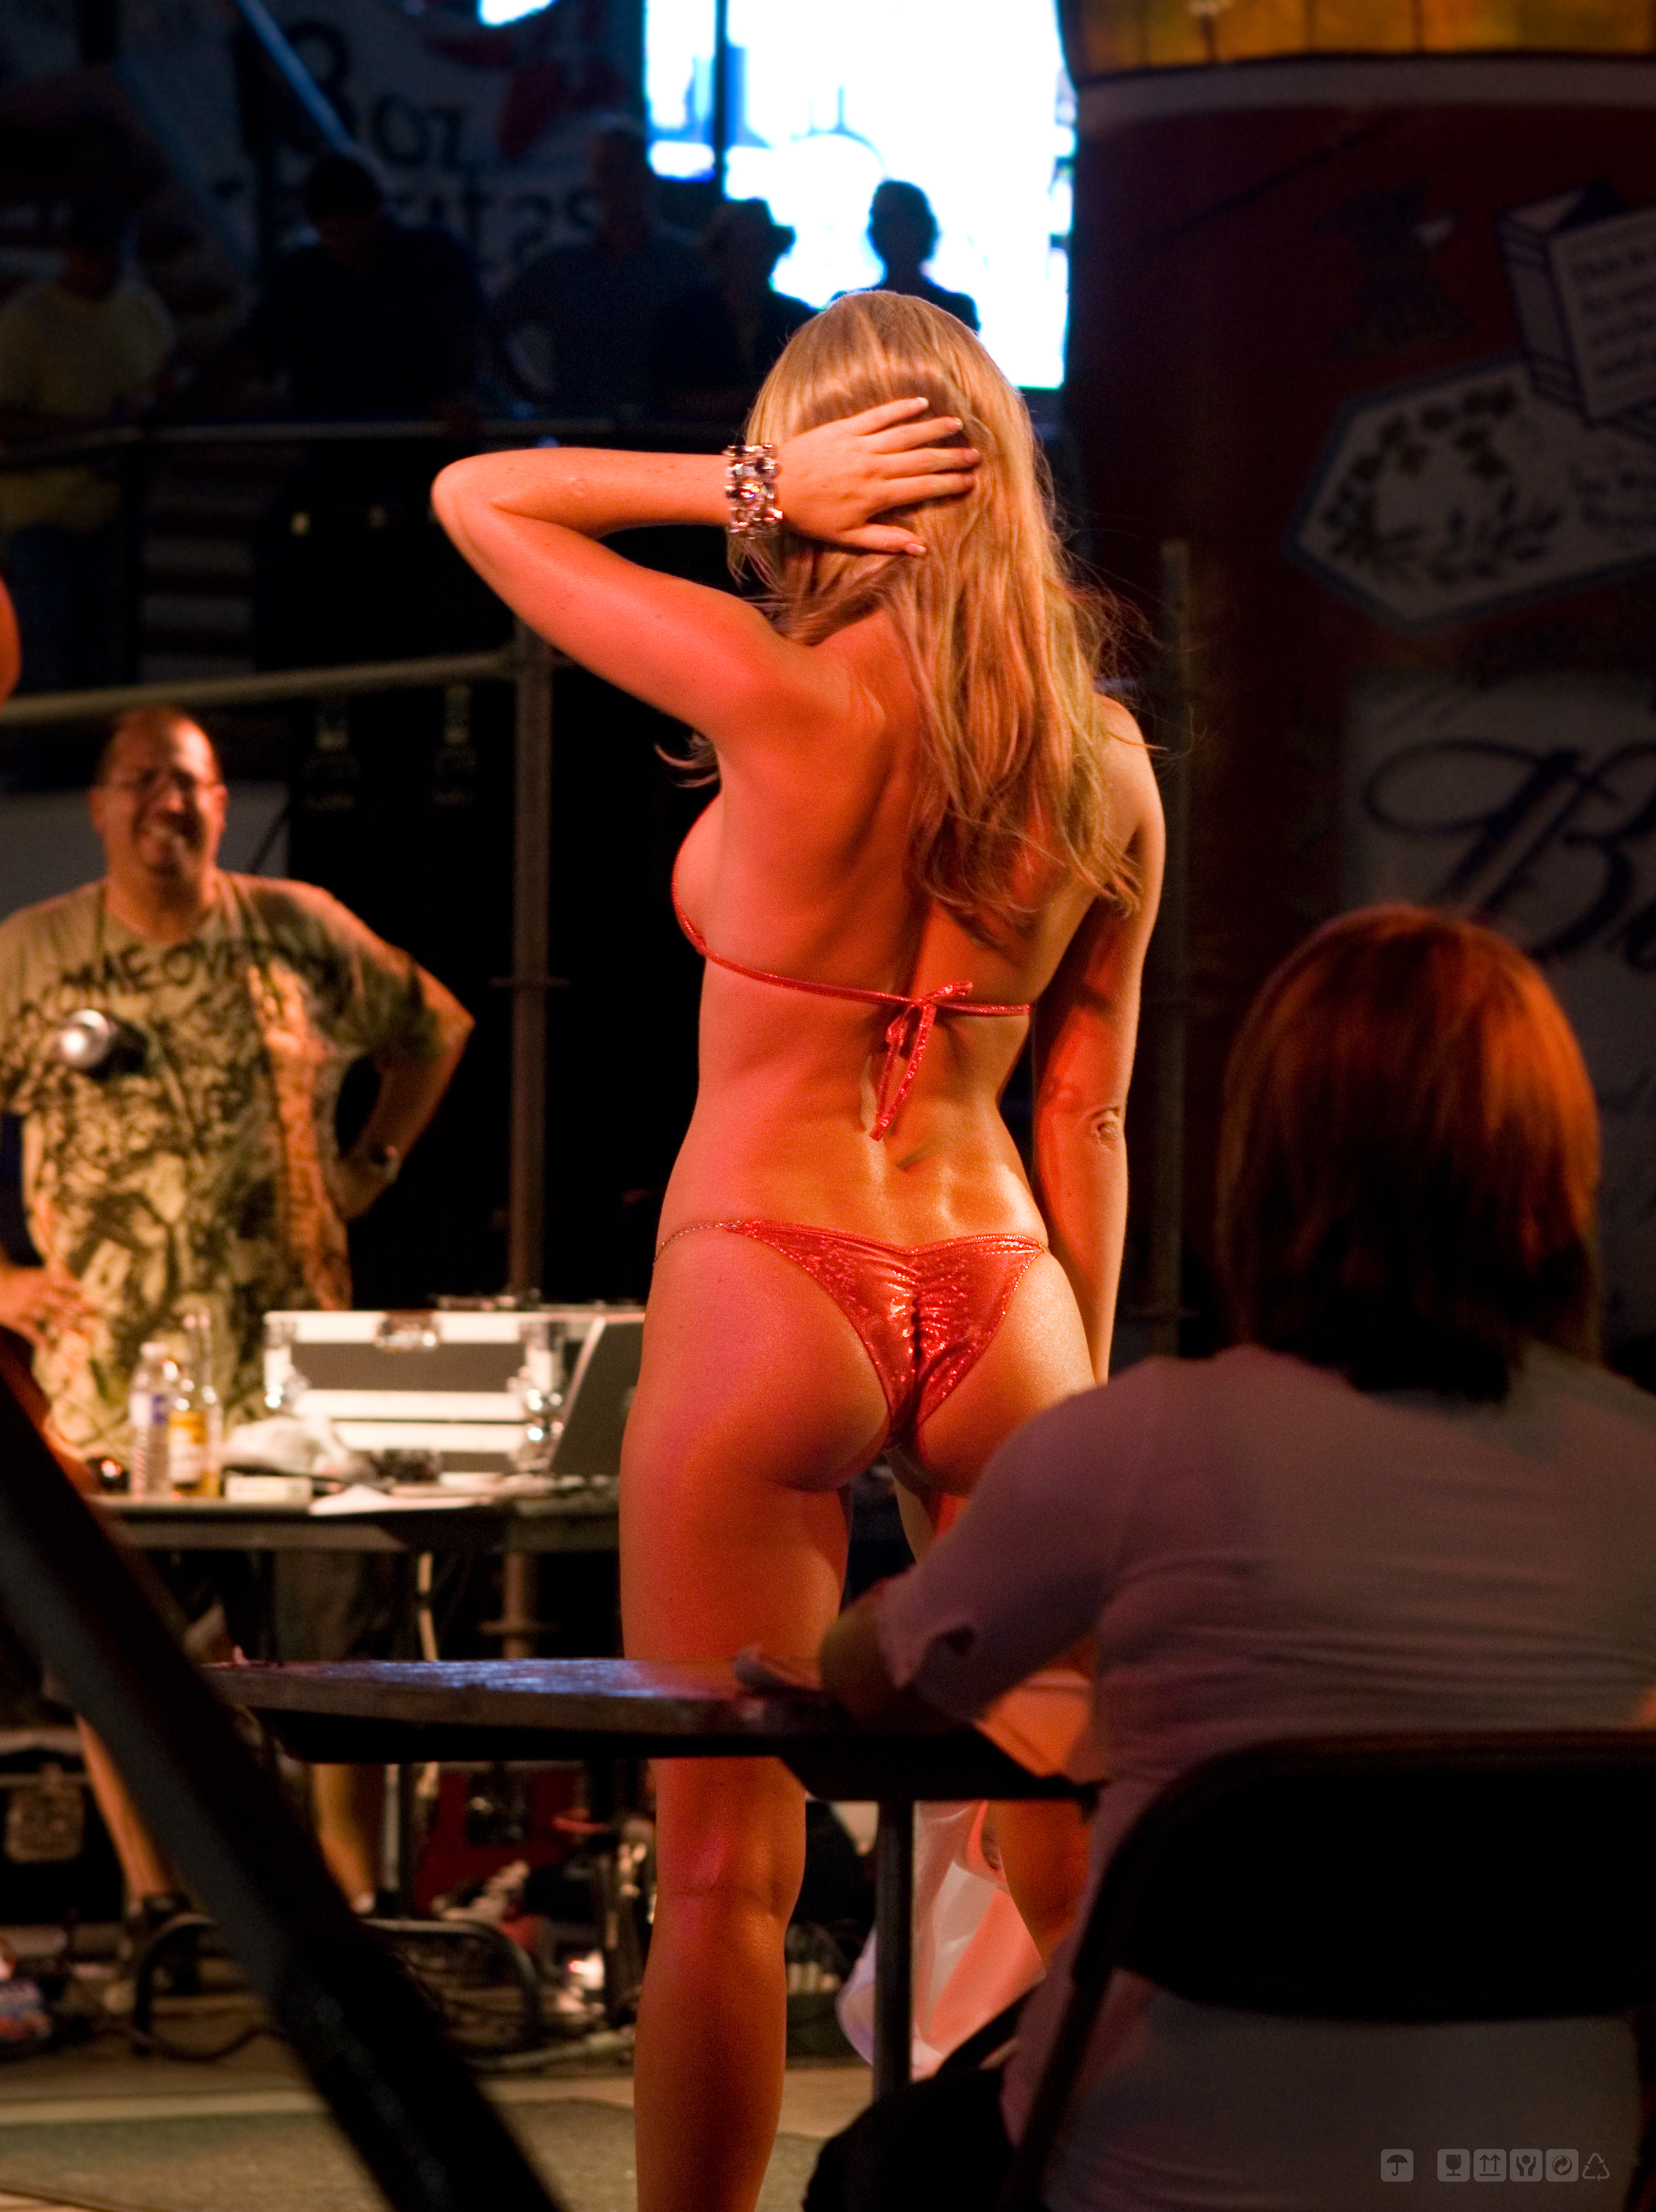 File:Hooters Bikini Contest 4.jpg